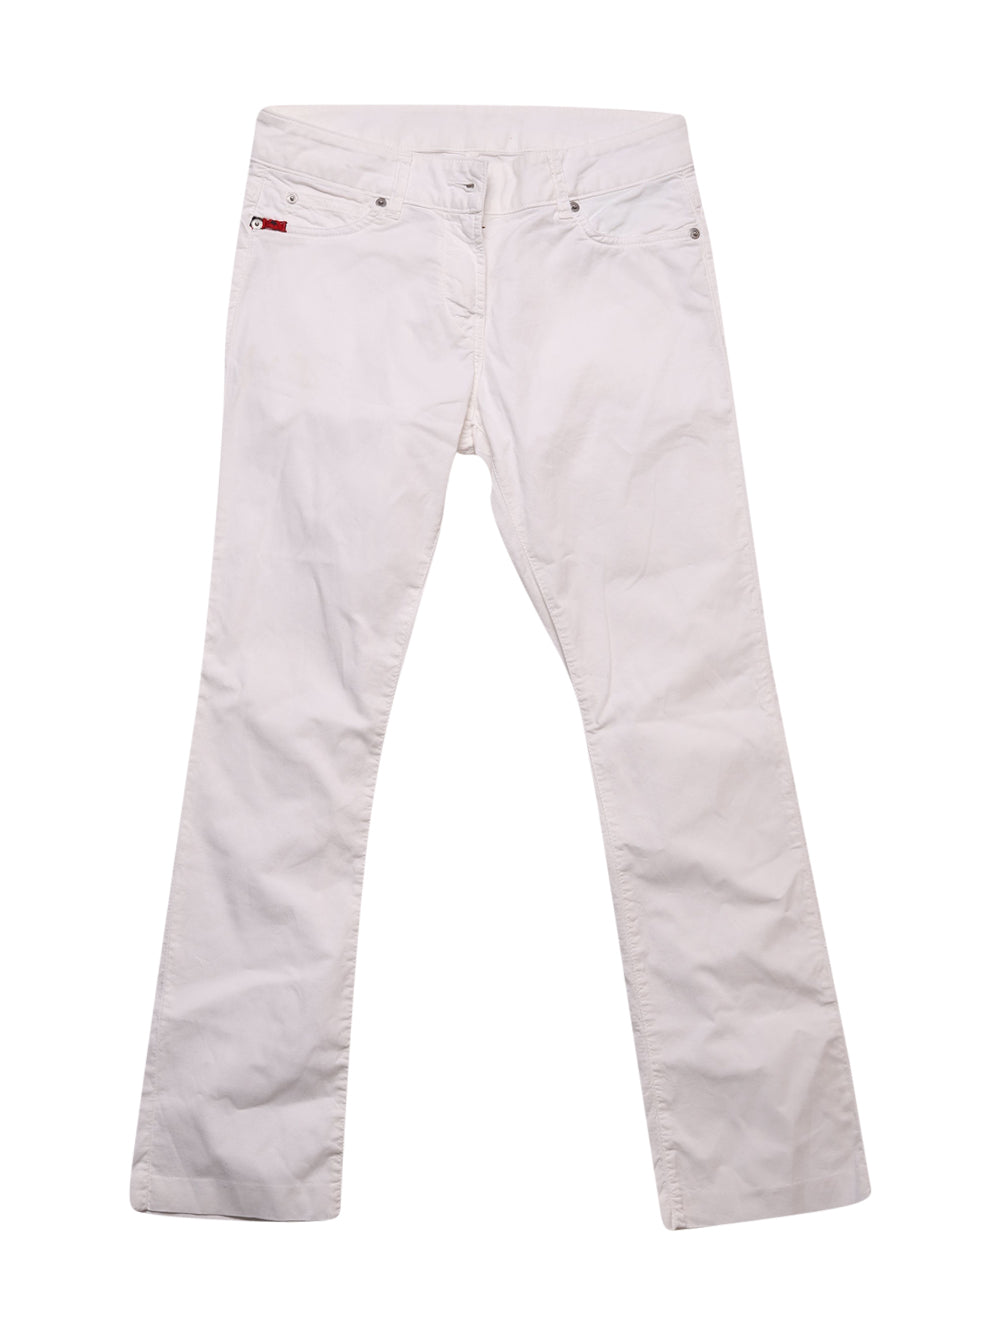 Front photo of Preloved Kappa White Woman's trousers - size 10/M